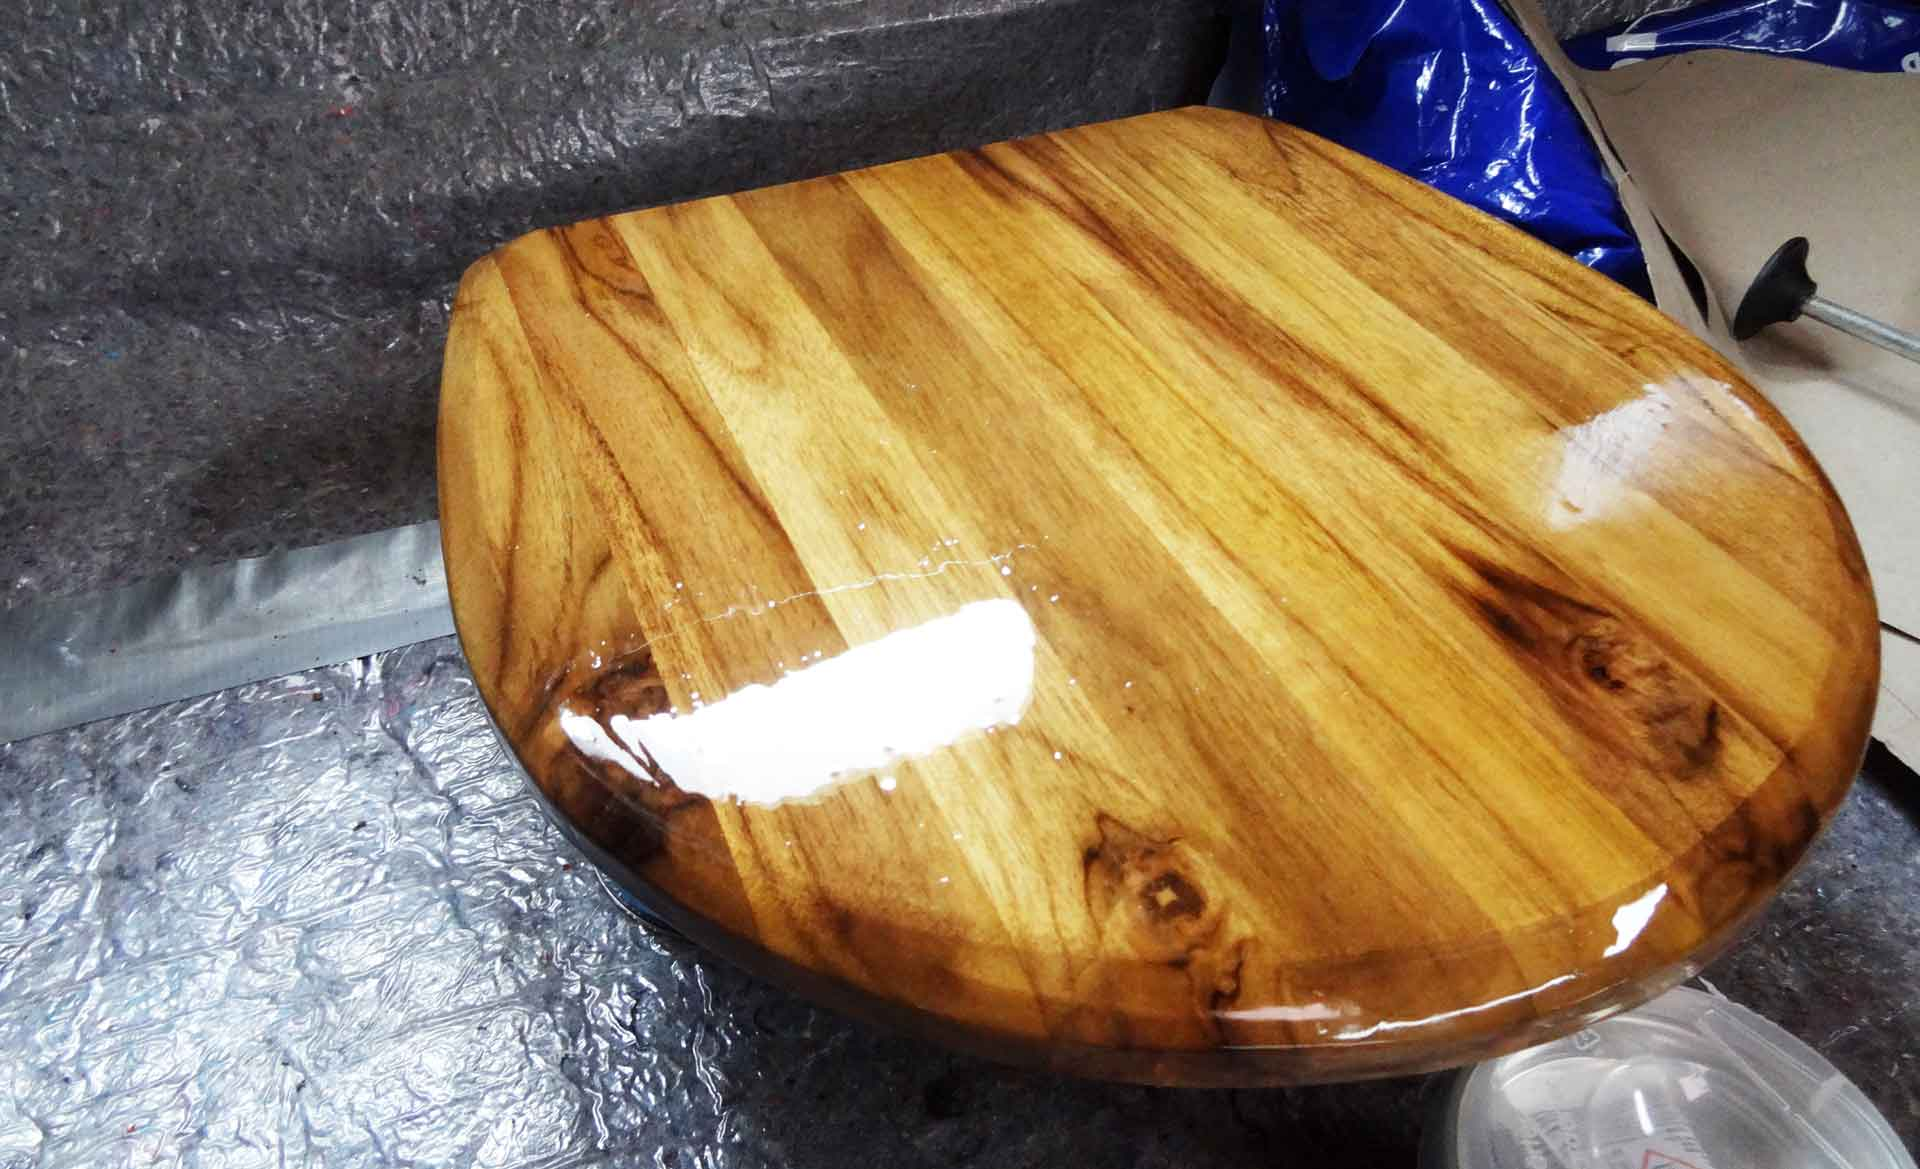 A perfect new Toilet Lid made of massive Teak